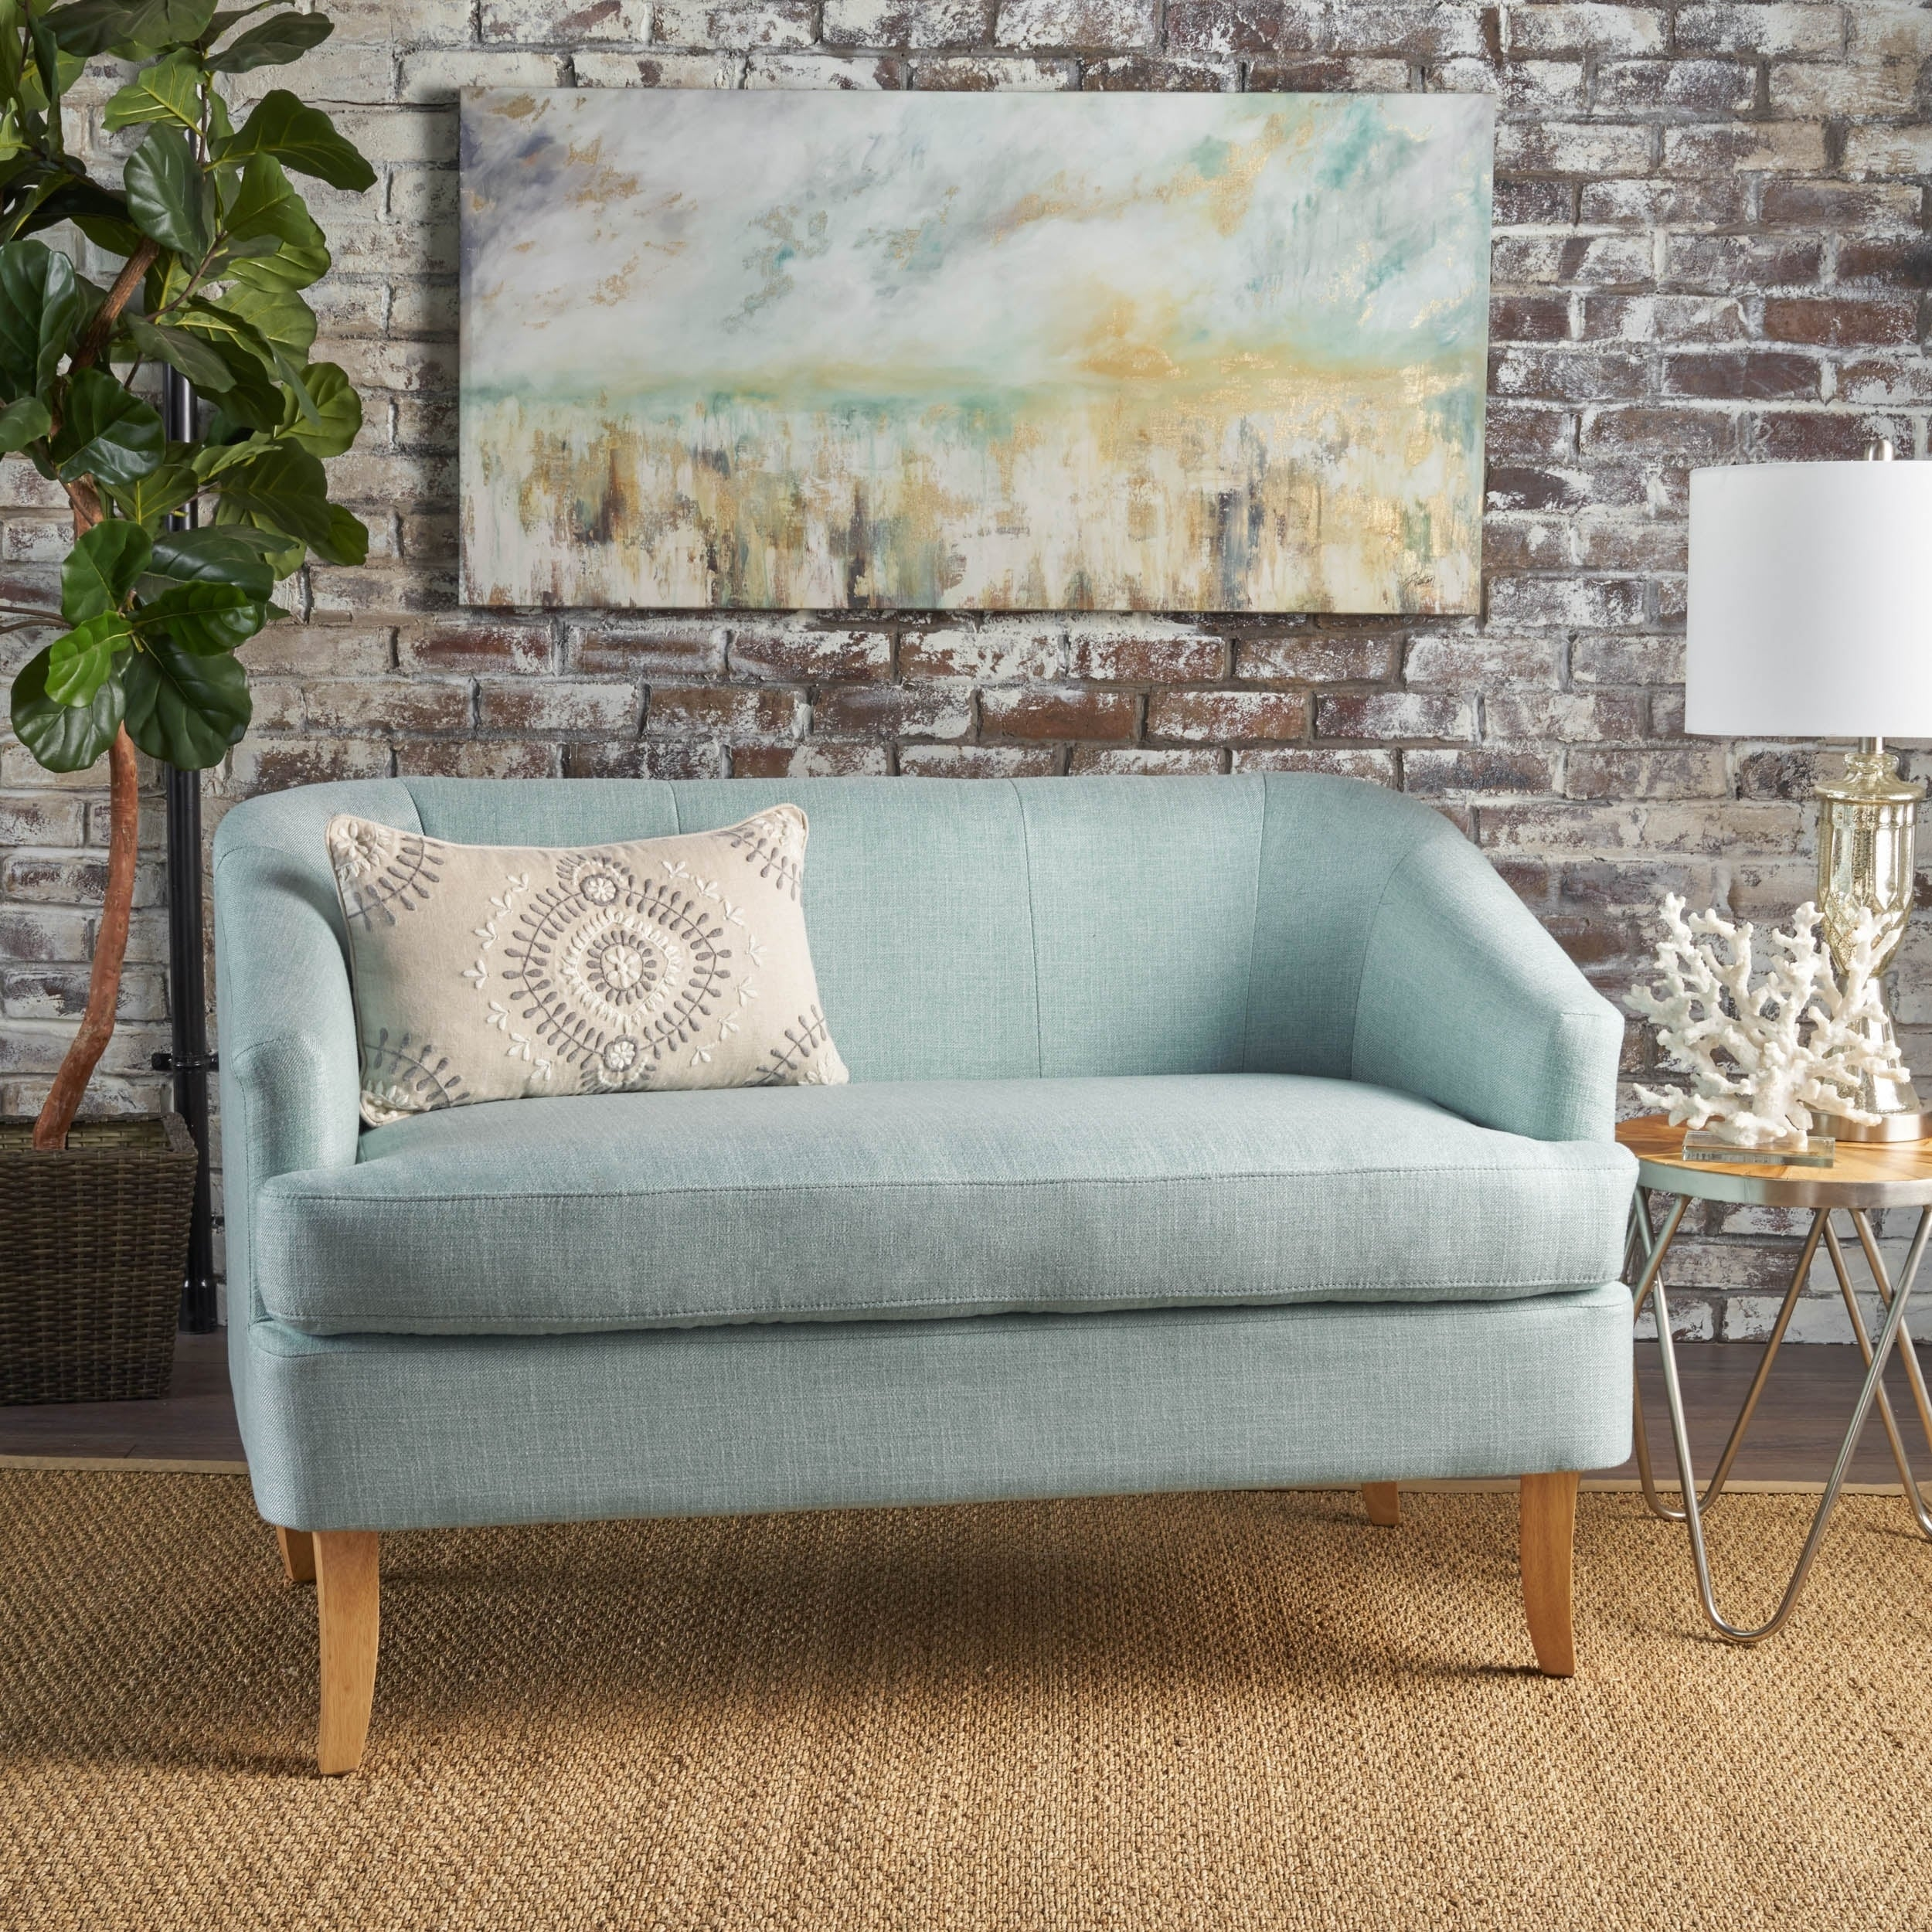 curved petite at id flemming or style seating f lassen settee loveseat furniture master in loveseats lambsfur